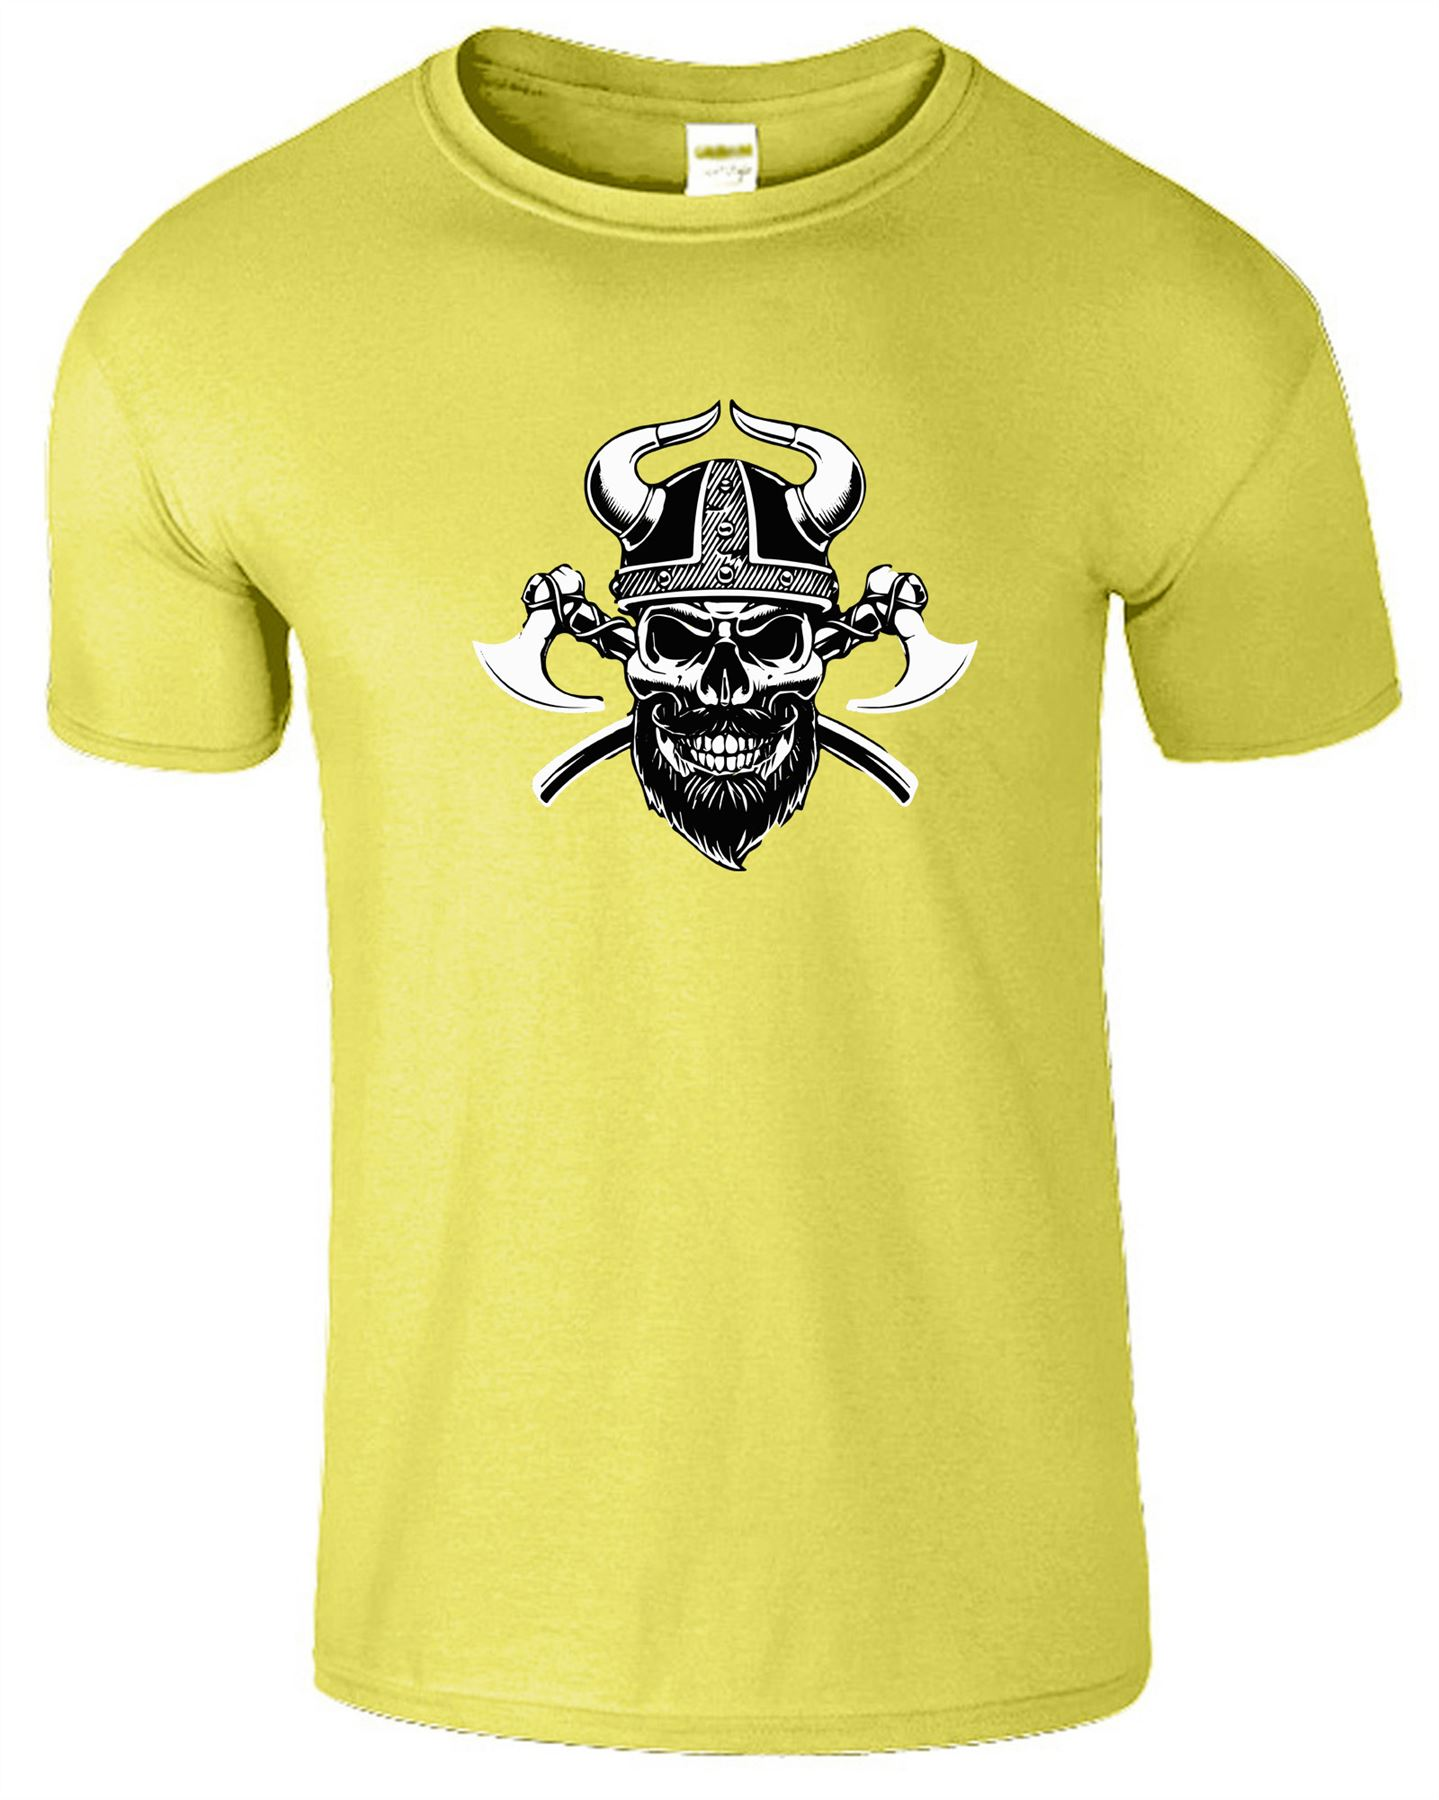 Mens Muscle Fit T Shirt Bodybuilding Crossfit Gym Top UK Seller for Viking Fans